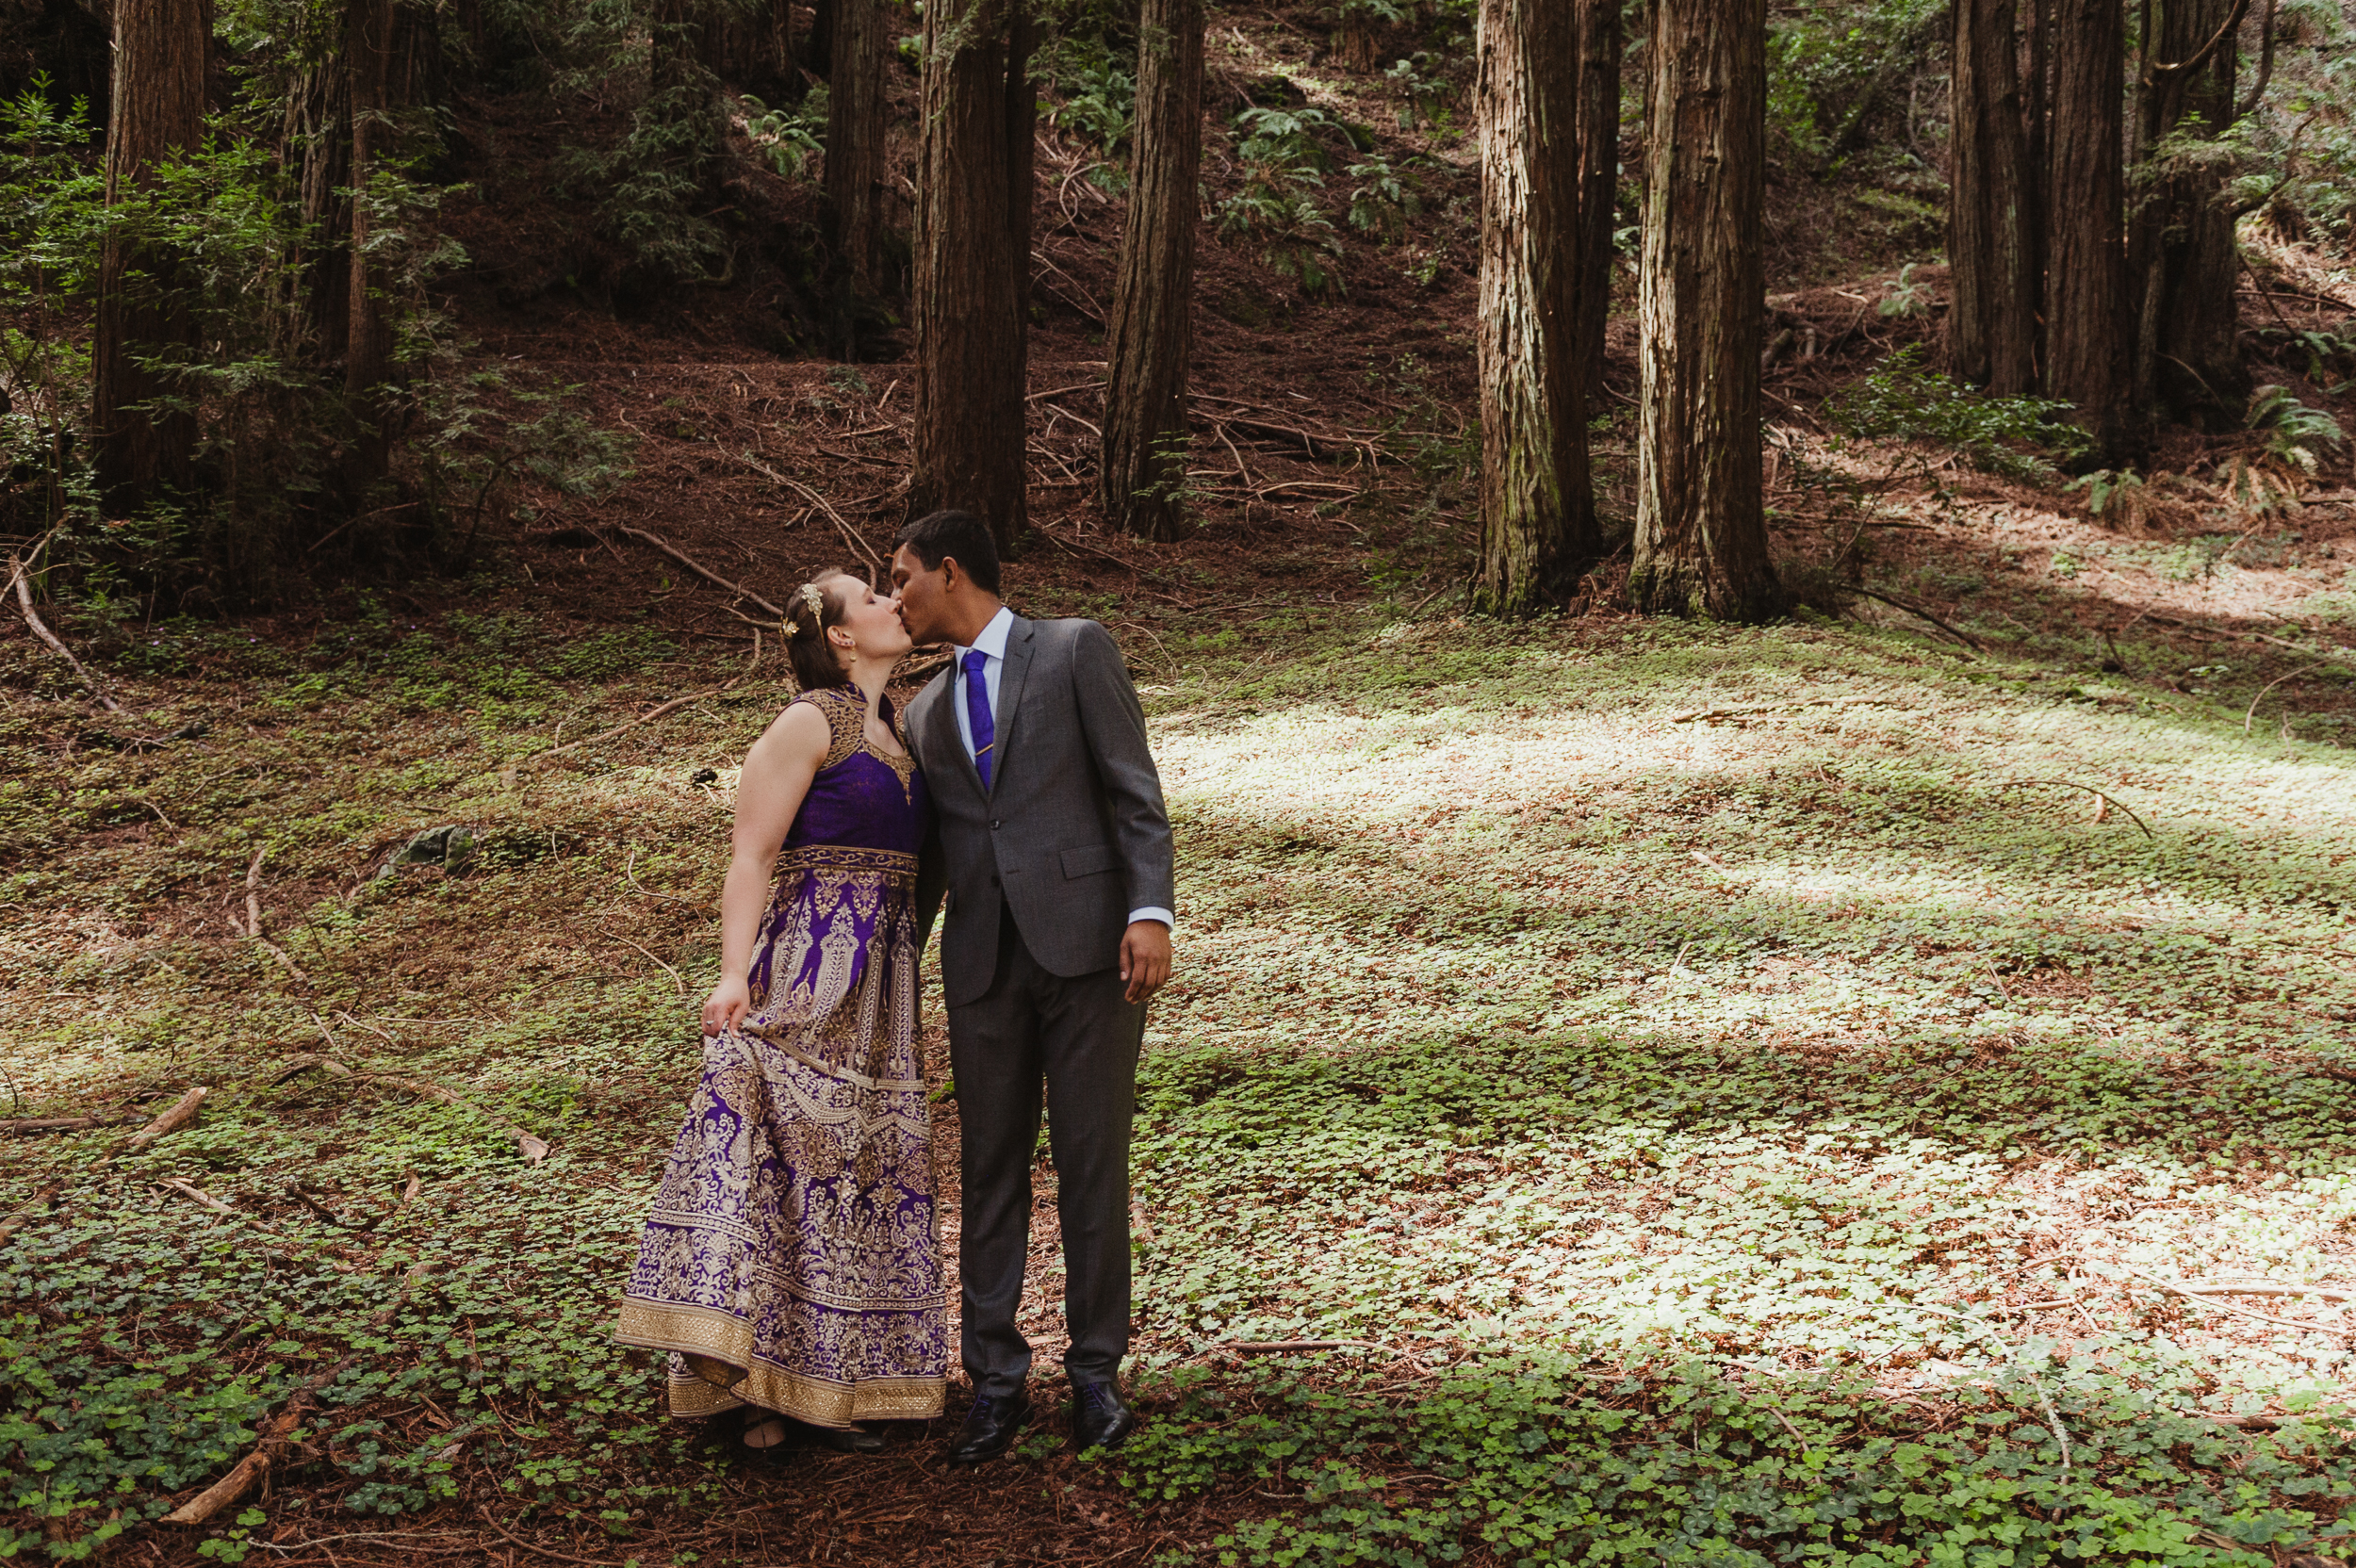 30-oakland-redwood-regional-park-wedding-vivianchen-377.jpg